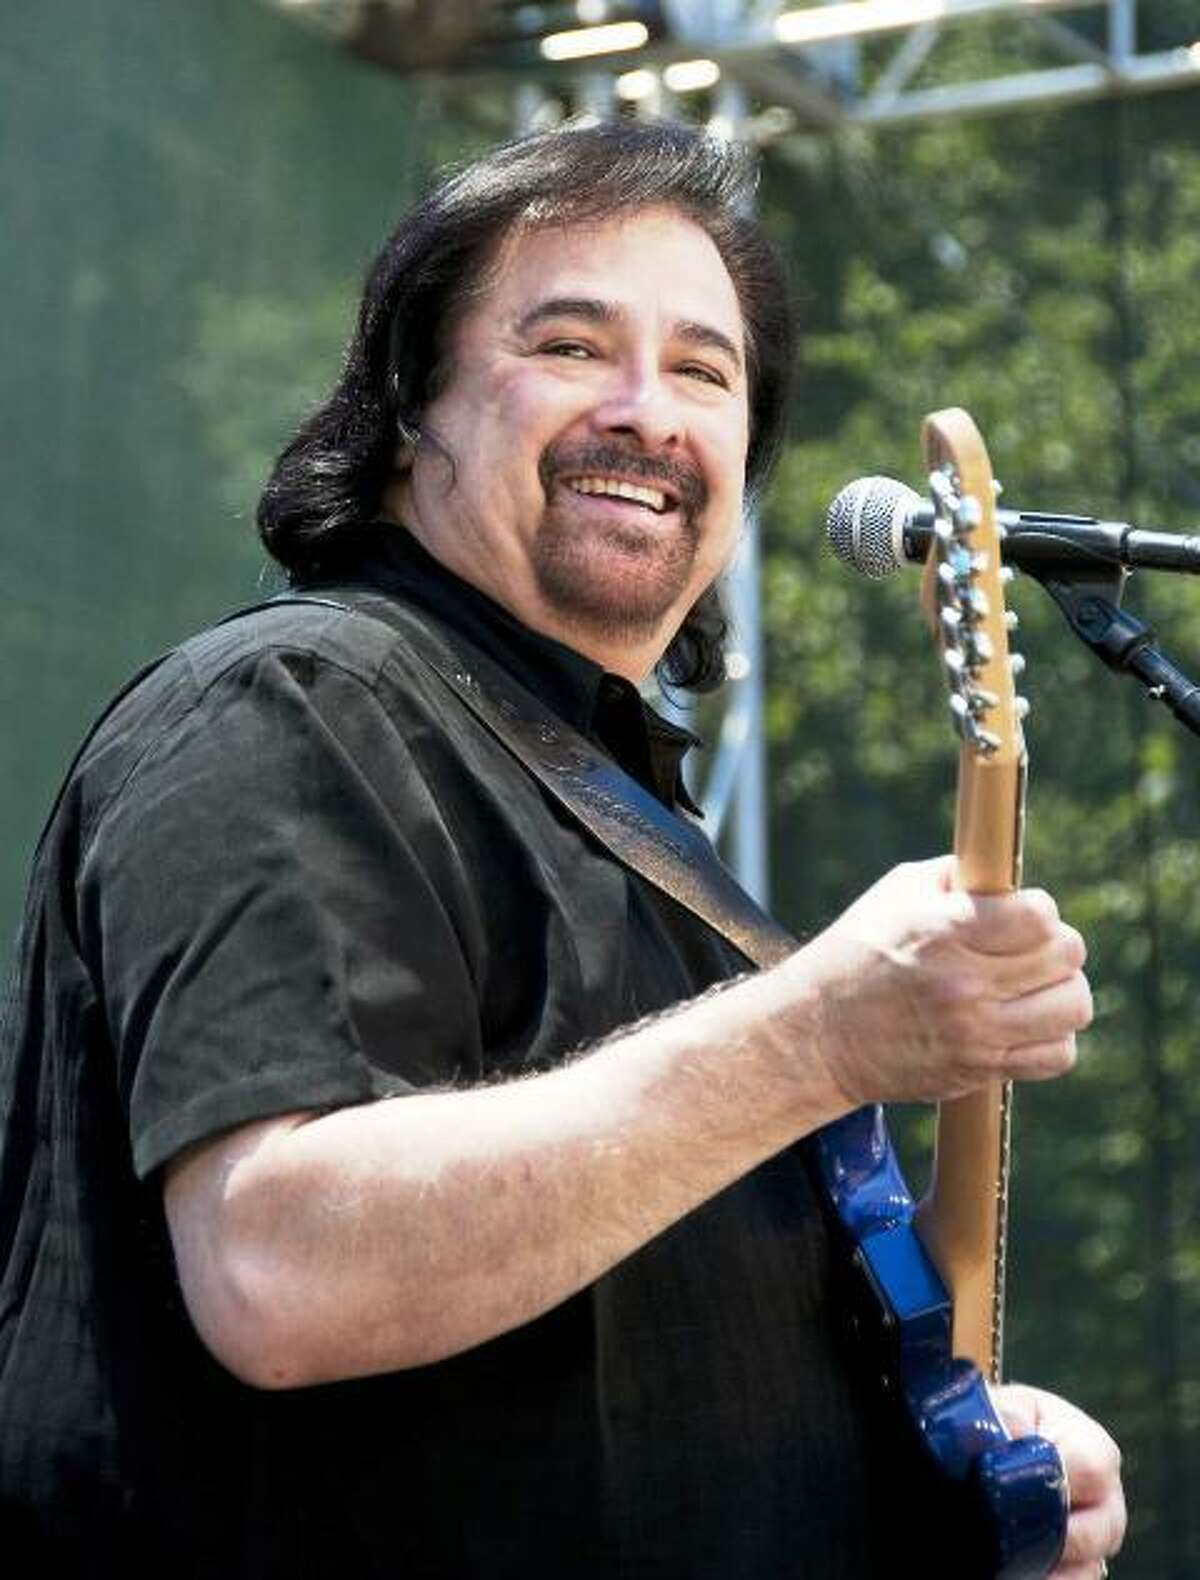 Blues-rock guitarist and vocalist Coco Montoya will perform Oct. 8 at FTC StageOne .